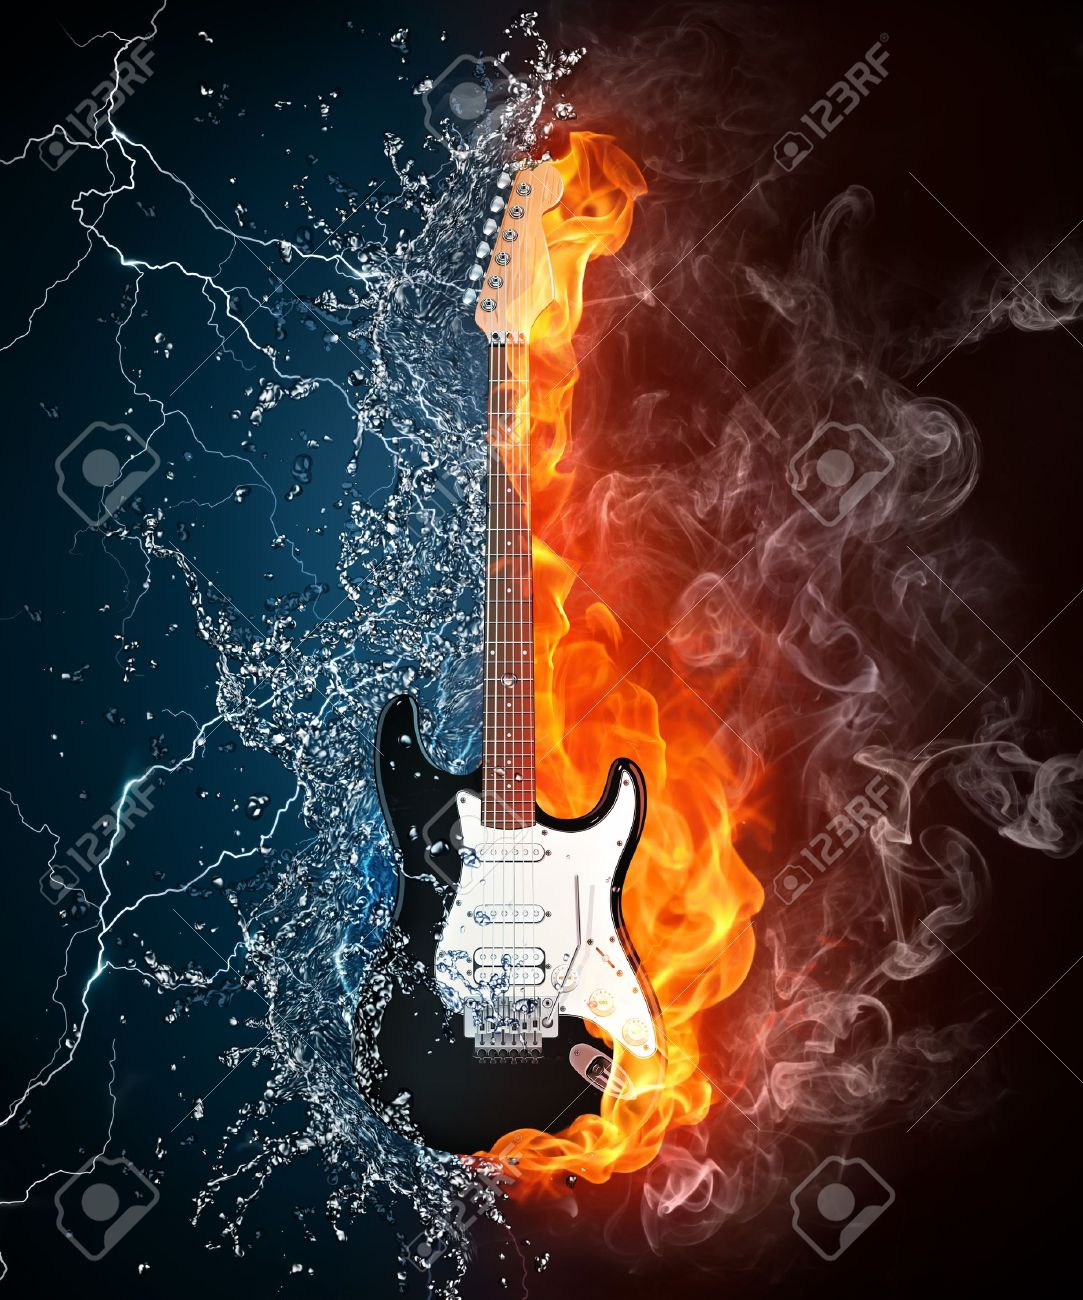 Electric Guitar On Fire And Water Isolated Black Background Computer Graphics Stock Photo